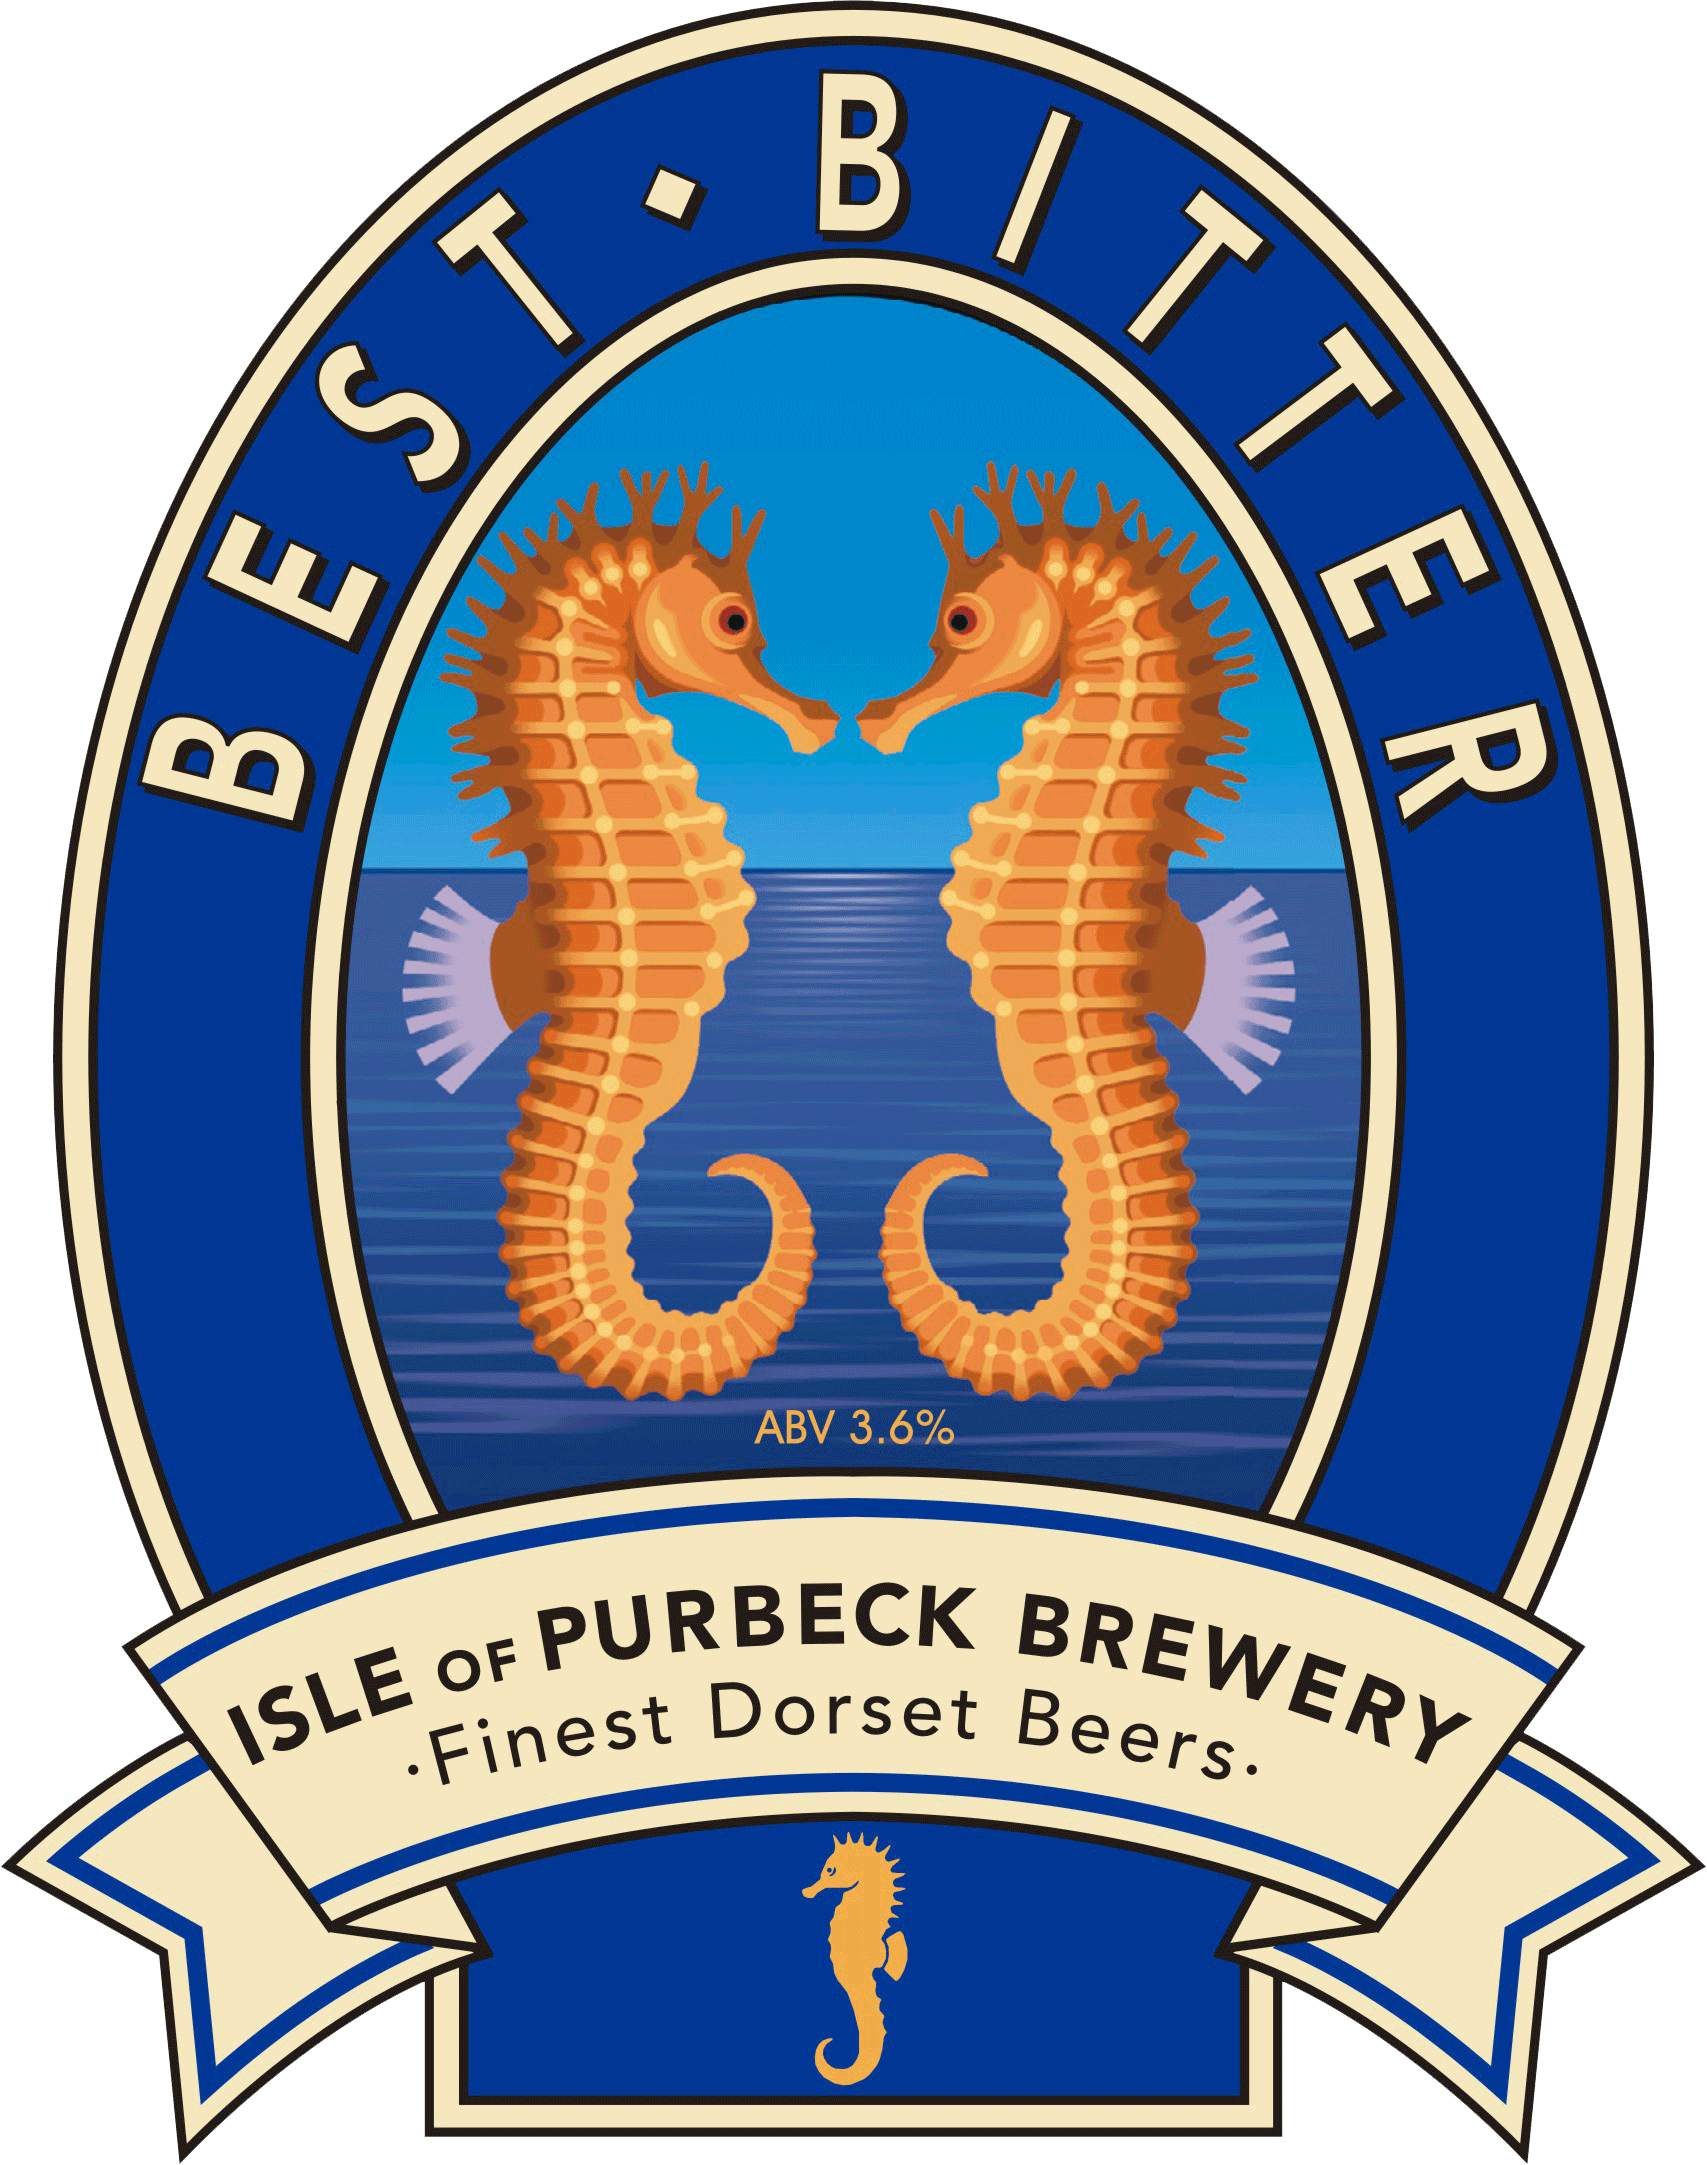 Isle of Purbeck Brewery Best Bitter pumpclip PNG